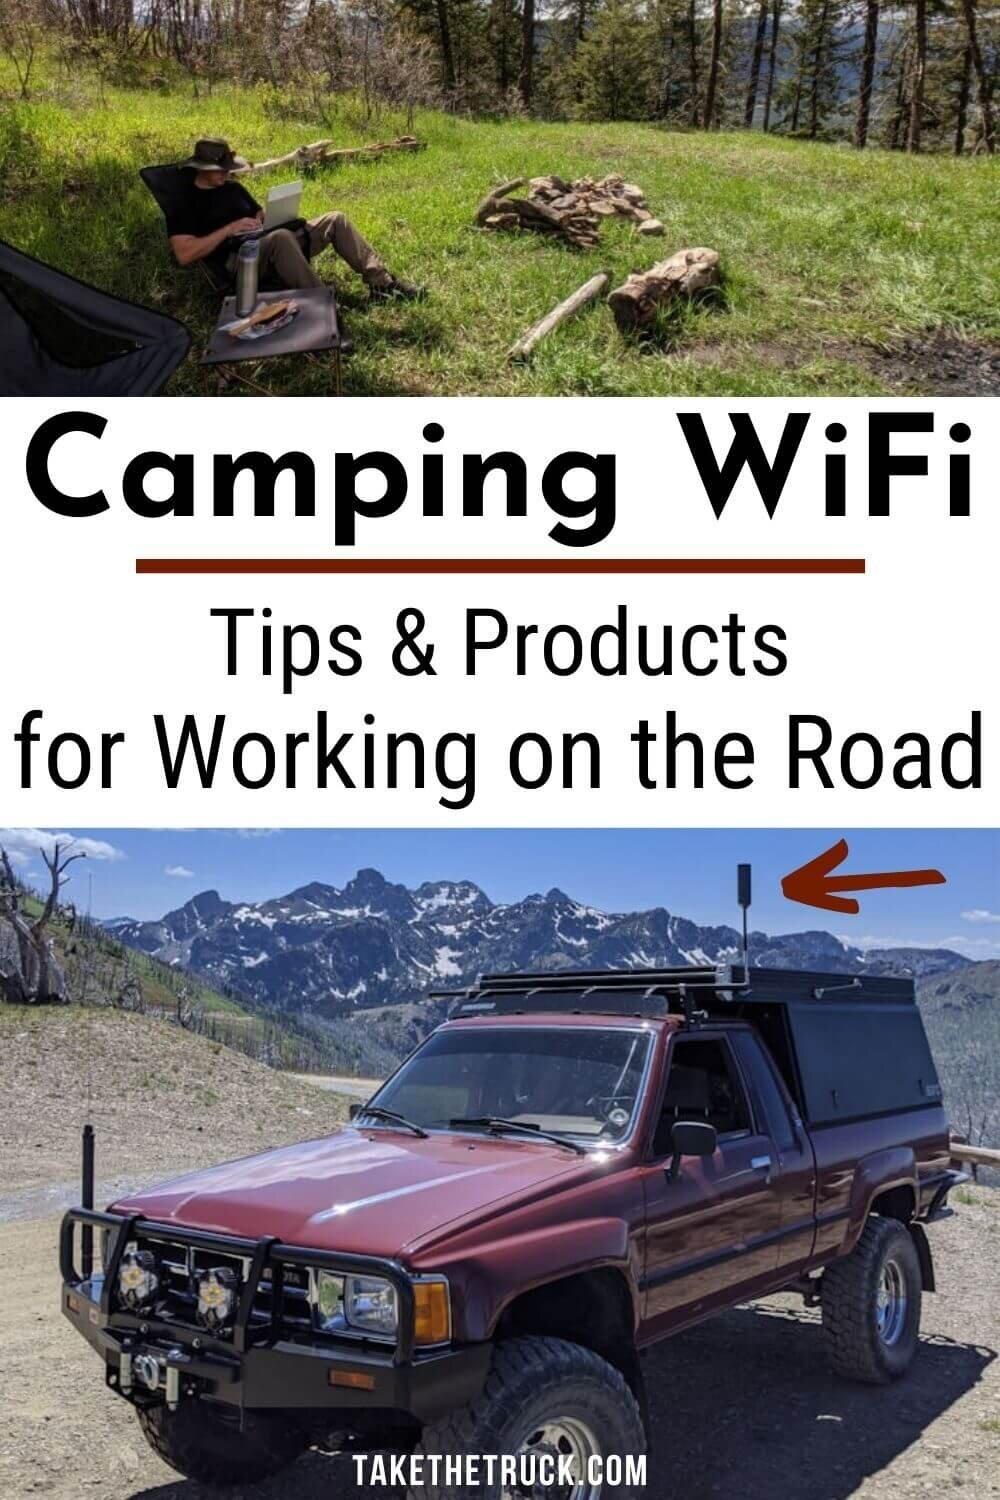 Check this out if you need wifi while camping! We've finally found a portable camping wifi antenne and cell signal booster that helps provide wifi while traveling, camping, or RVing!